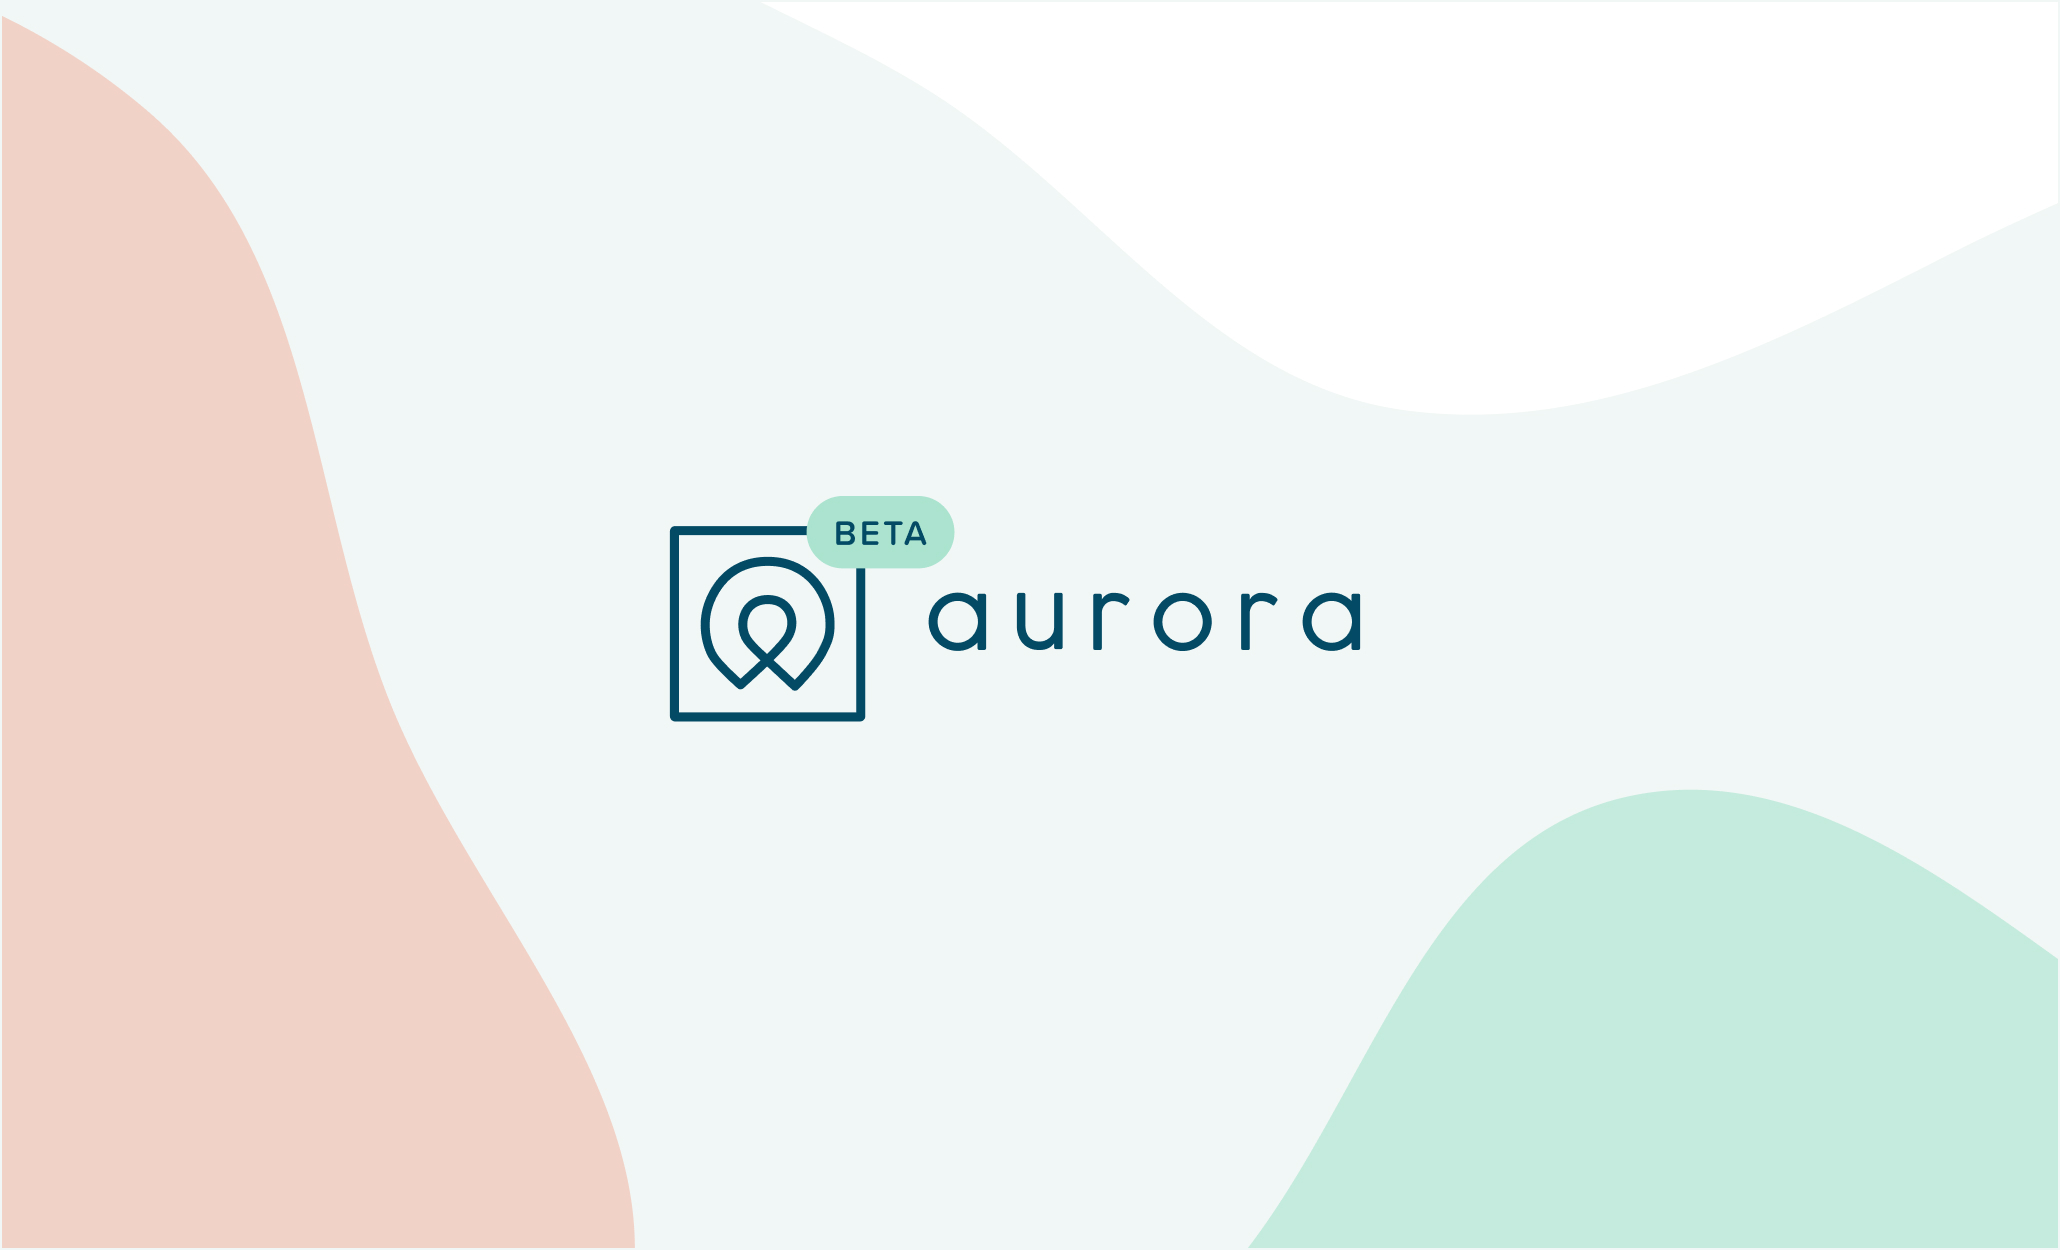 Aurora 2.0 is in beta